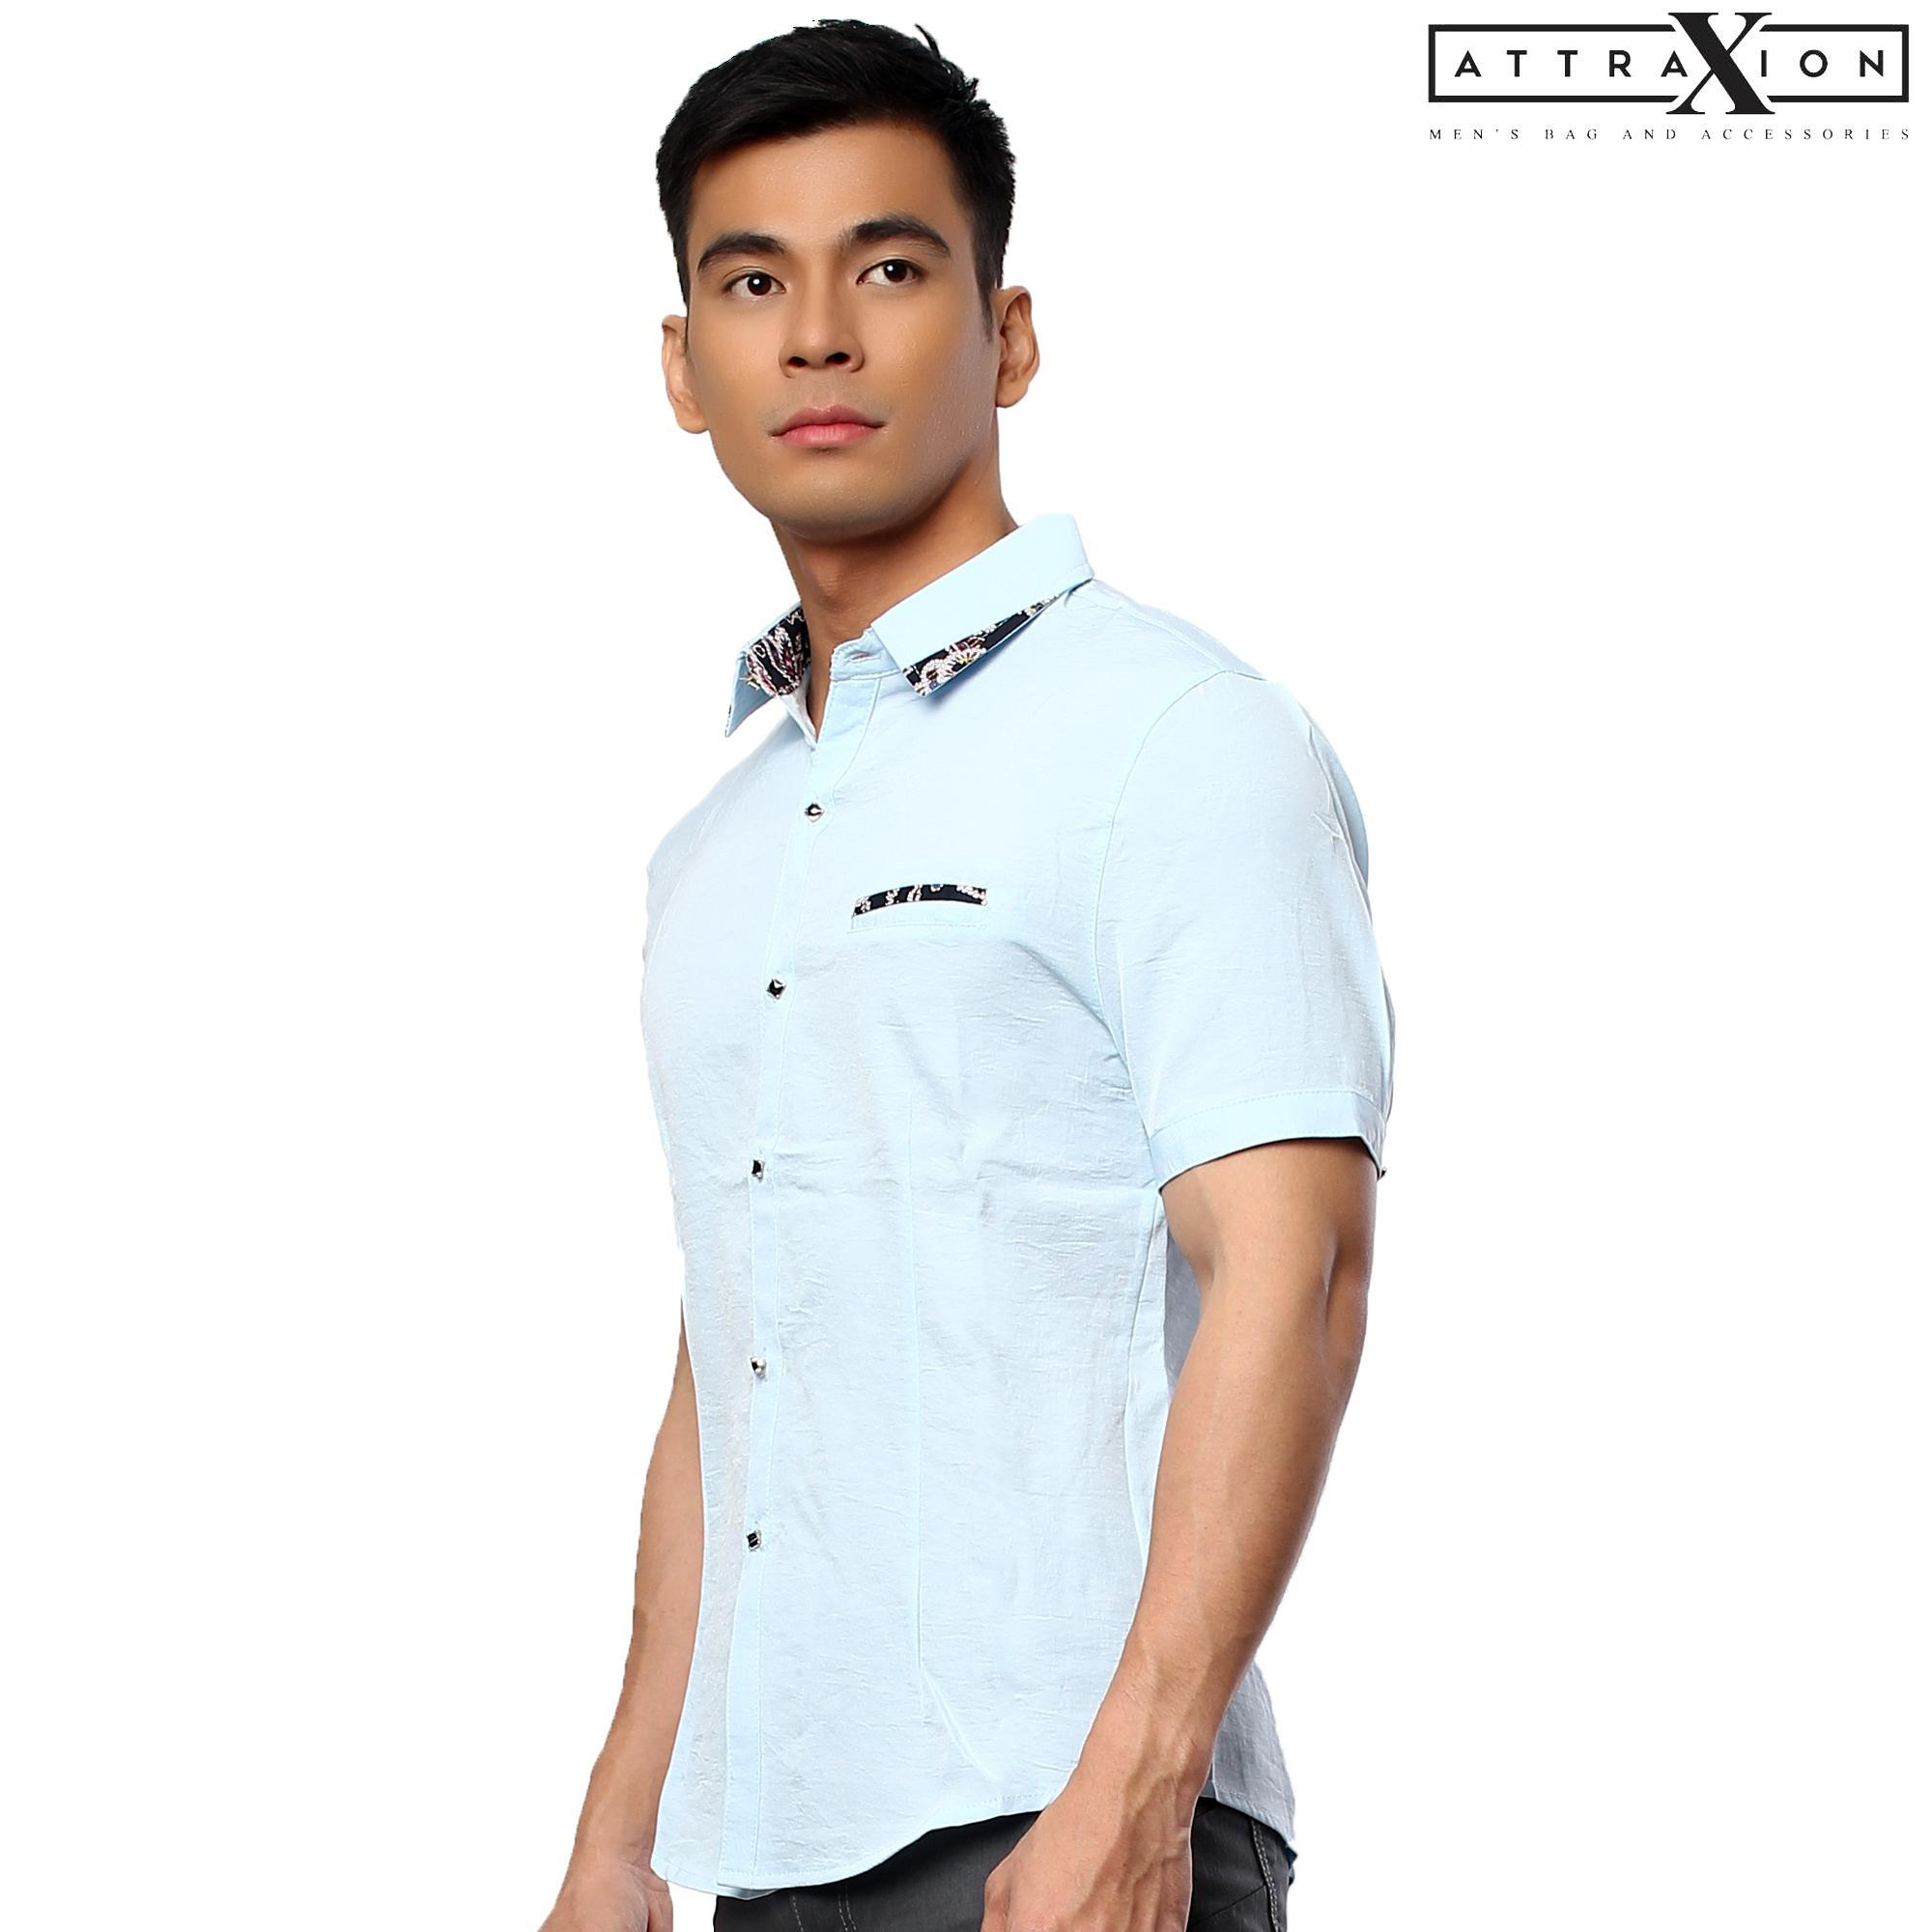 c3258d7b953f Shirt for Men for sale - Mens Fashion Shirt Online Deals & Prices in ...